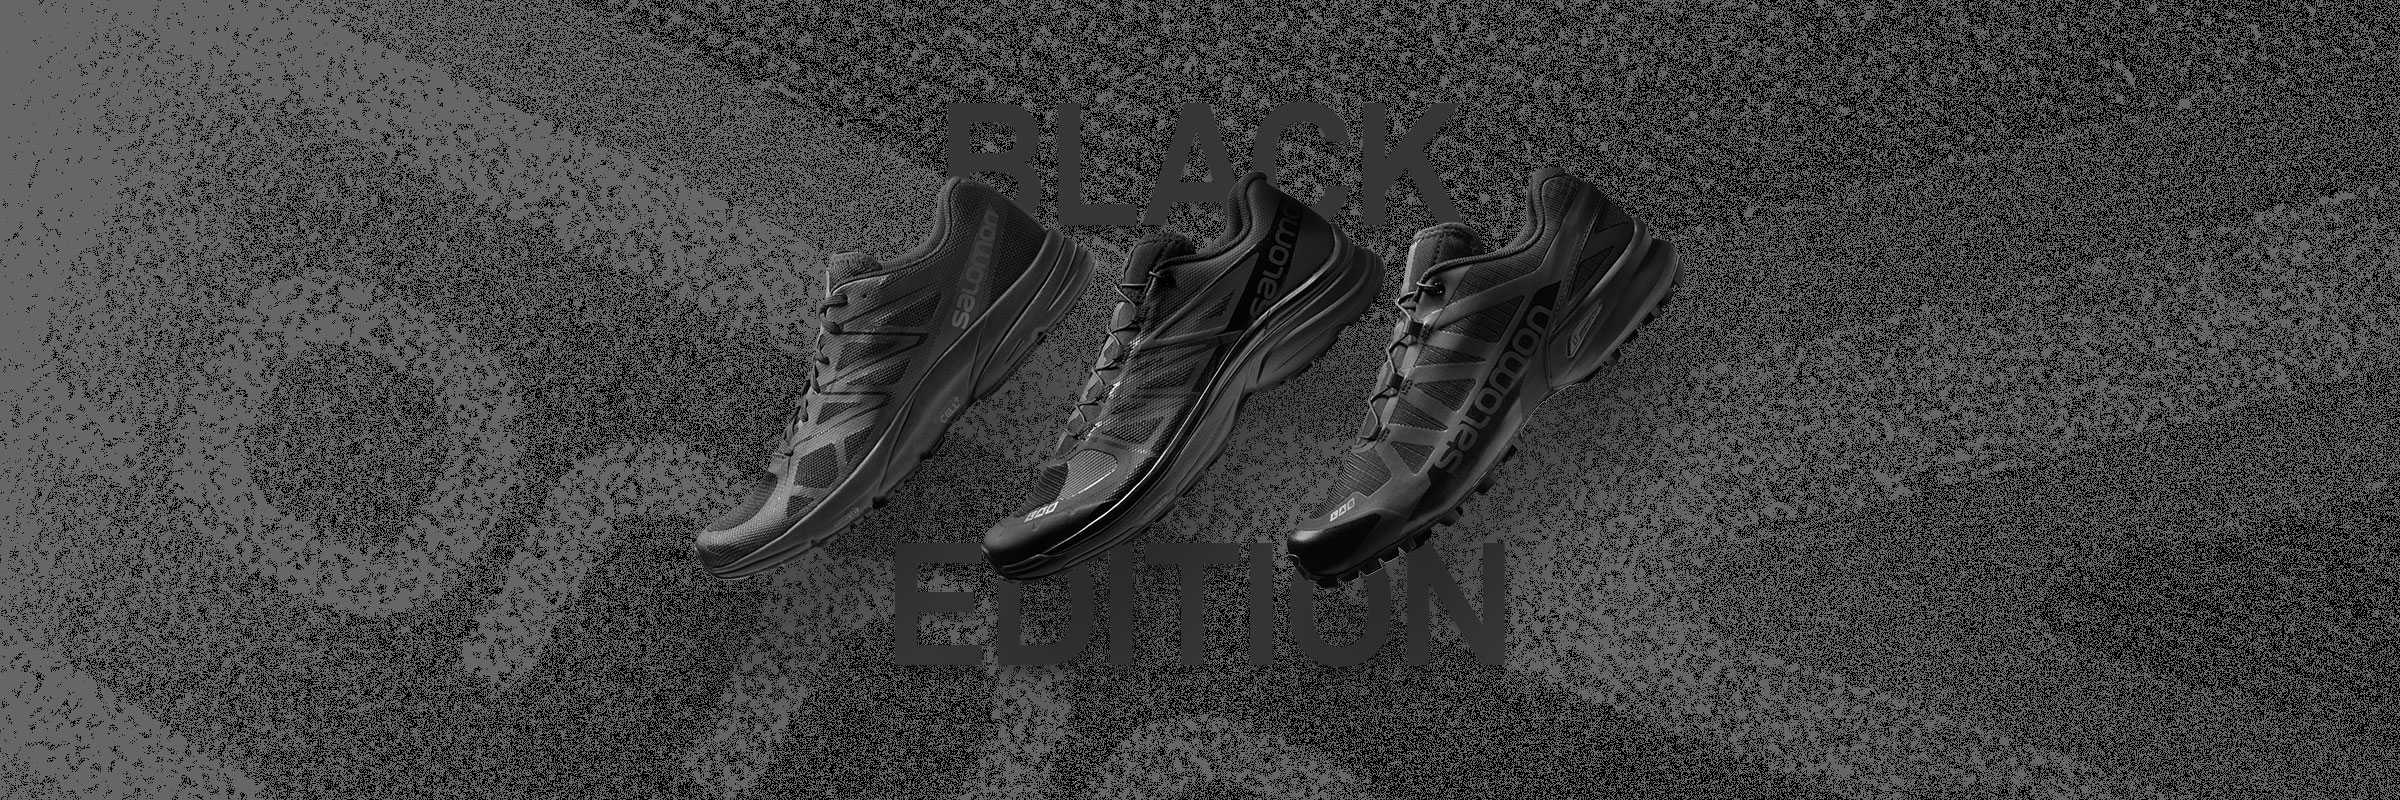 Discover the Limited Edition Salomon S/LAB Black Edition Collection